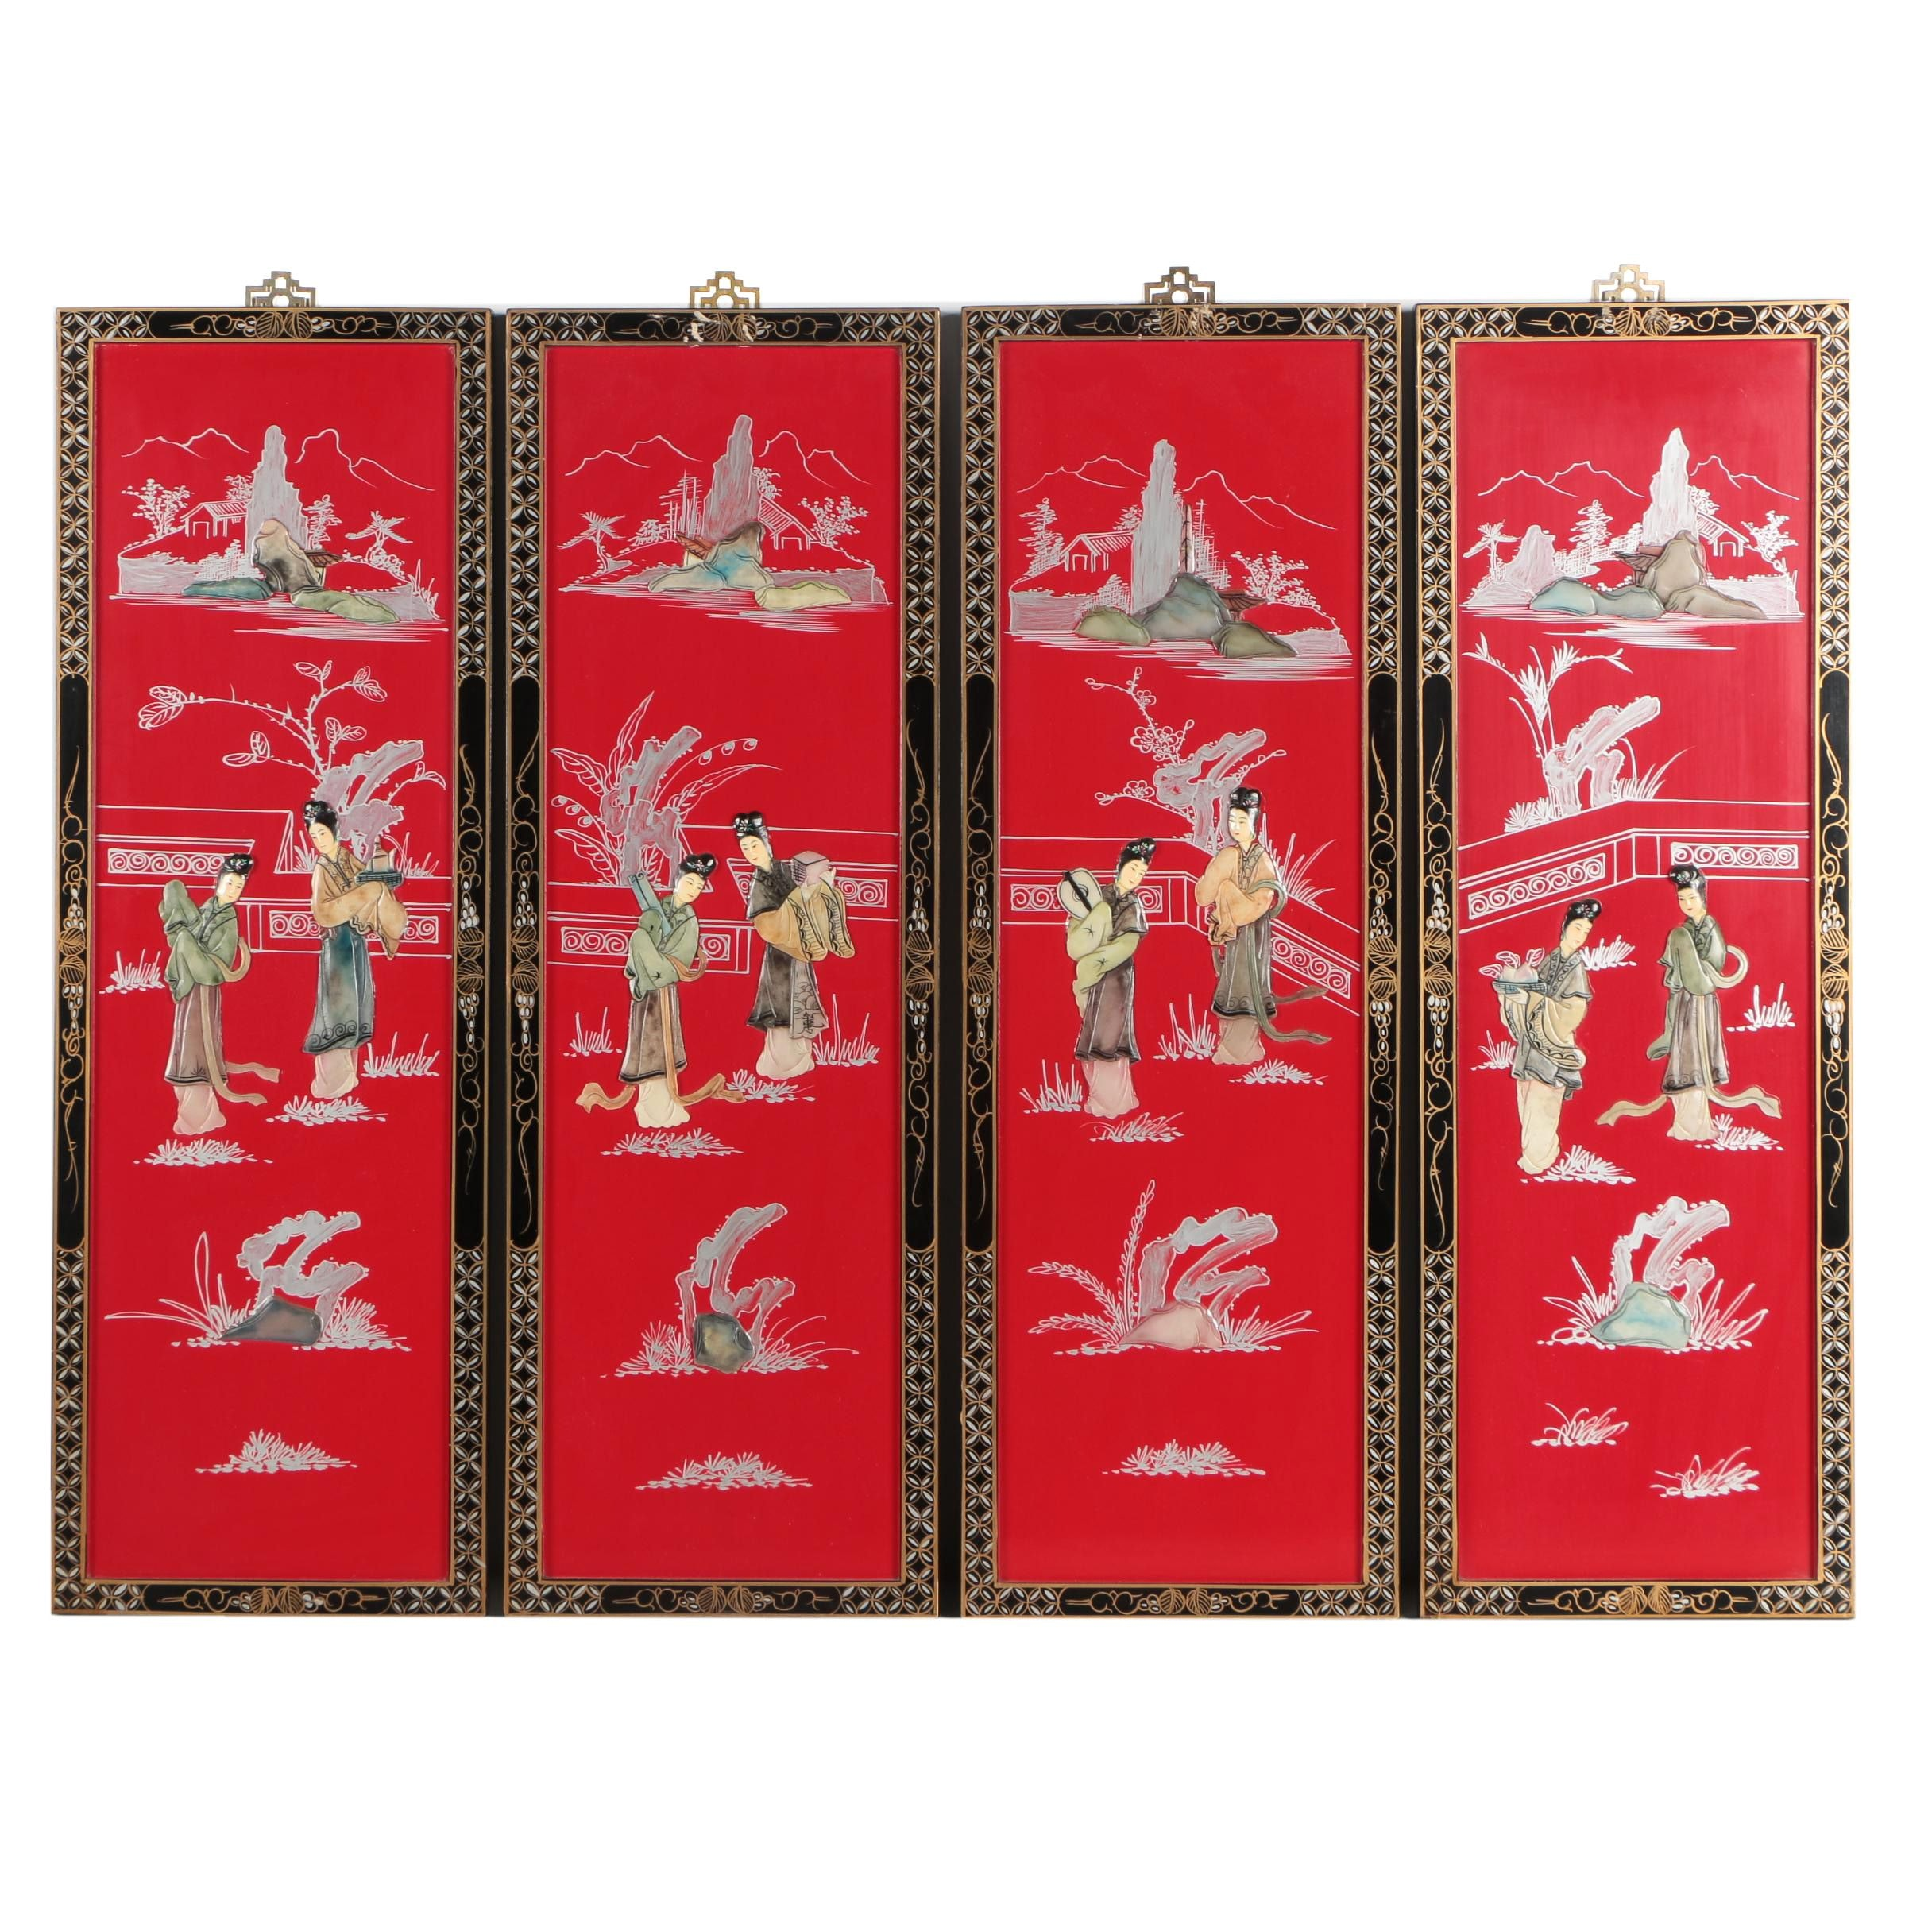 Chinese Wood Panels with Carved Soapstone Inlays